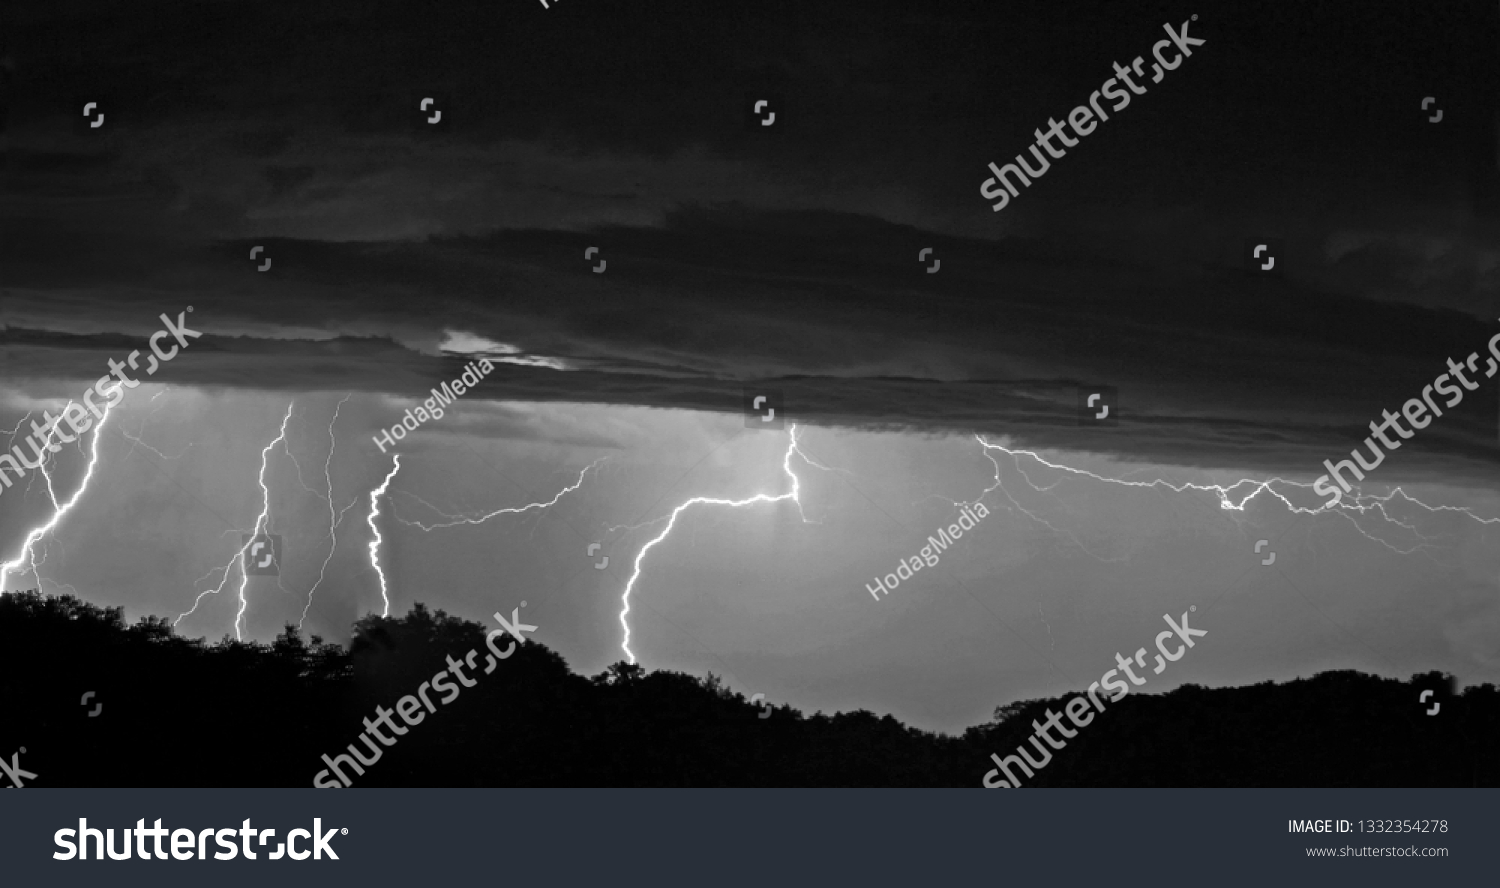 stock-photo-numerous-lightning-bolts-fro